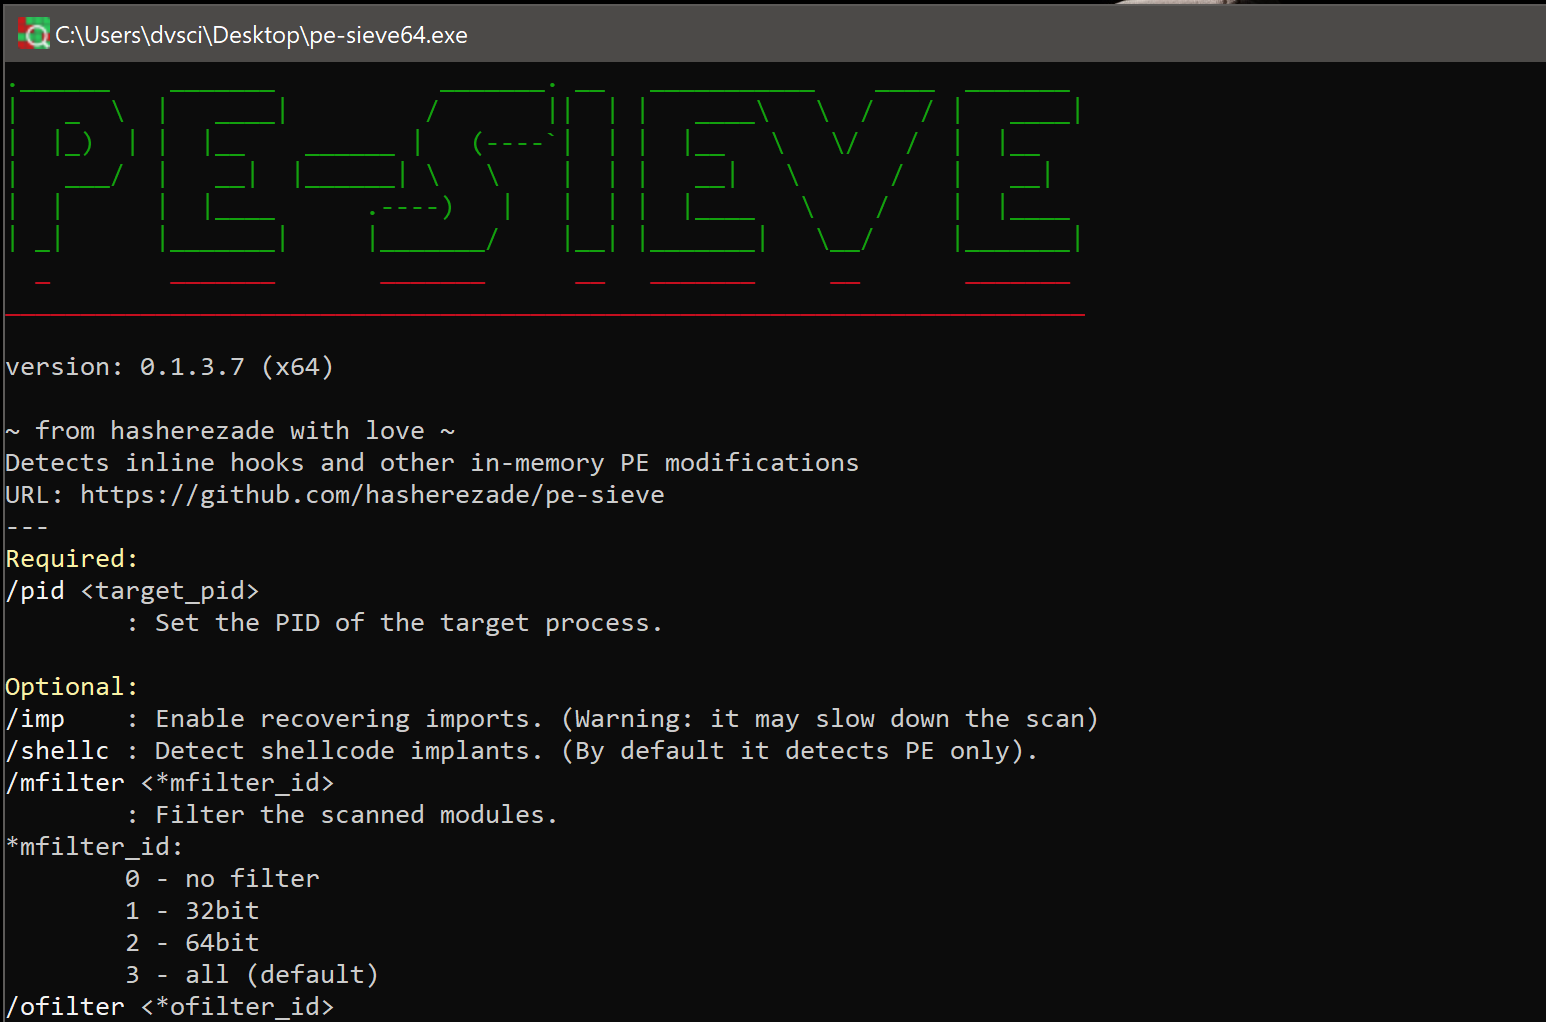 pe-sieve v0.2.9 released: searching for the modules containing in-memory code modifications